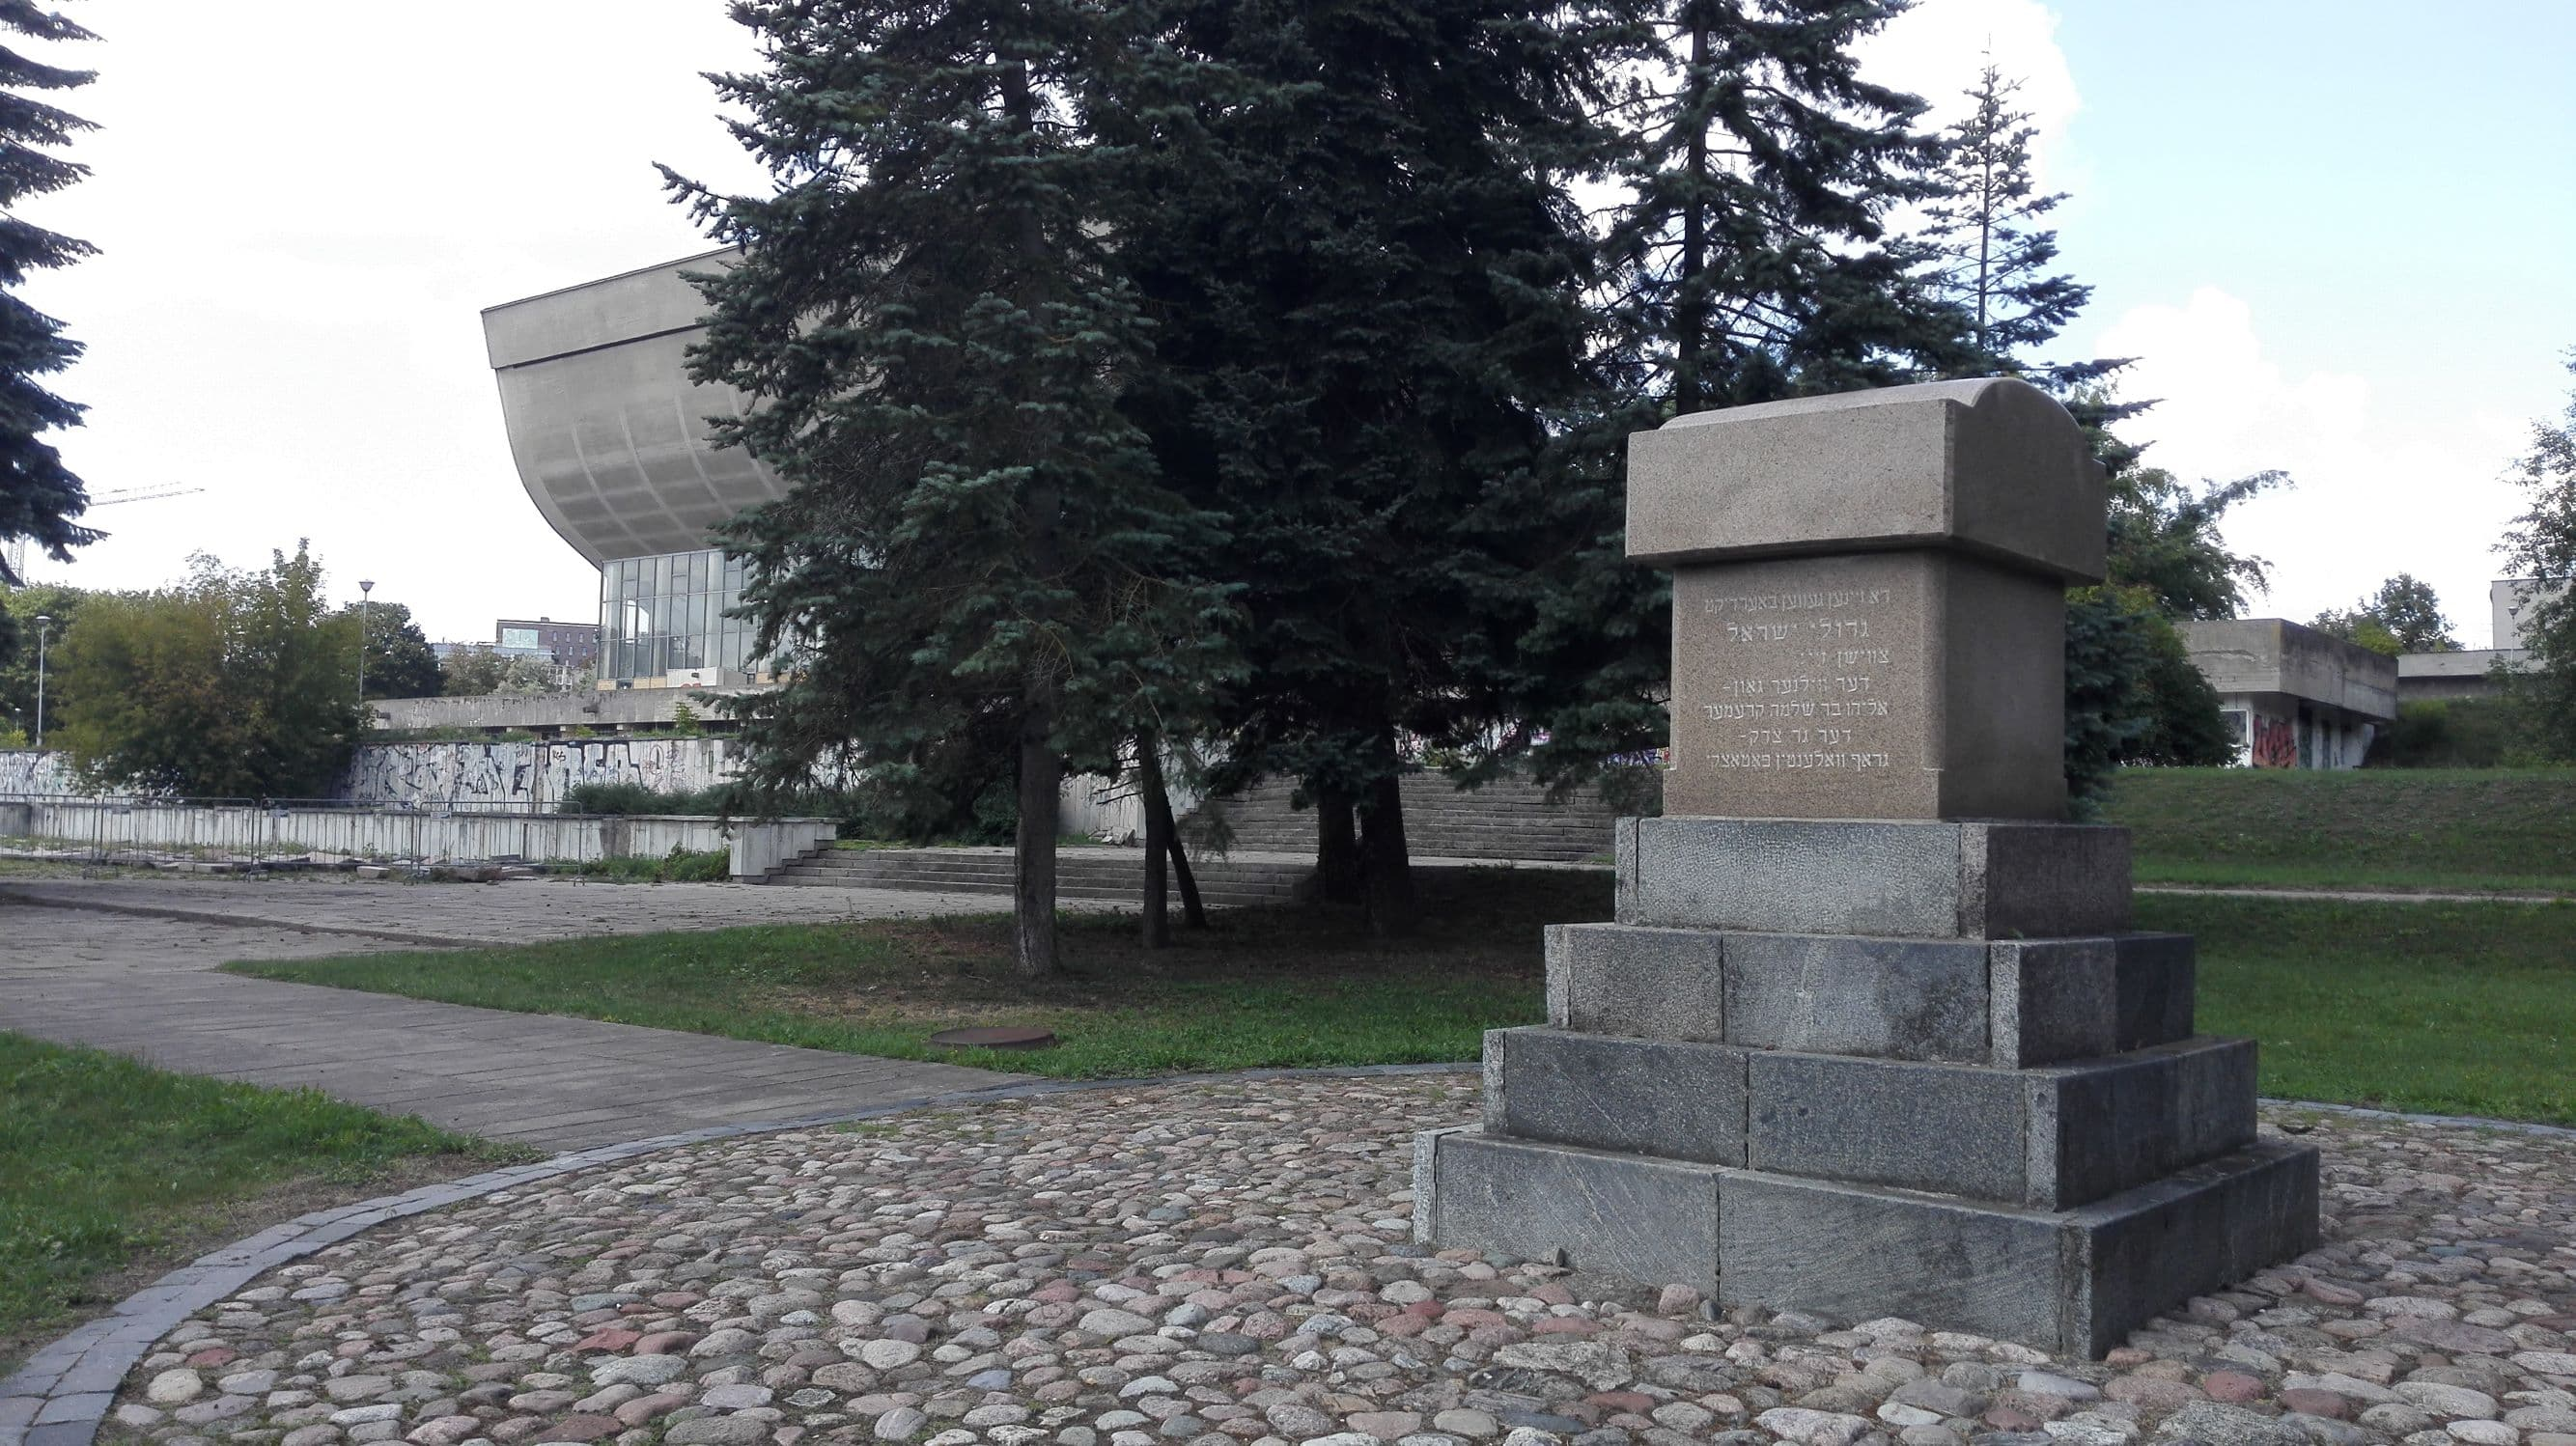 A monument at the site of Old Jewish cemetery in Vilnius